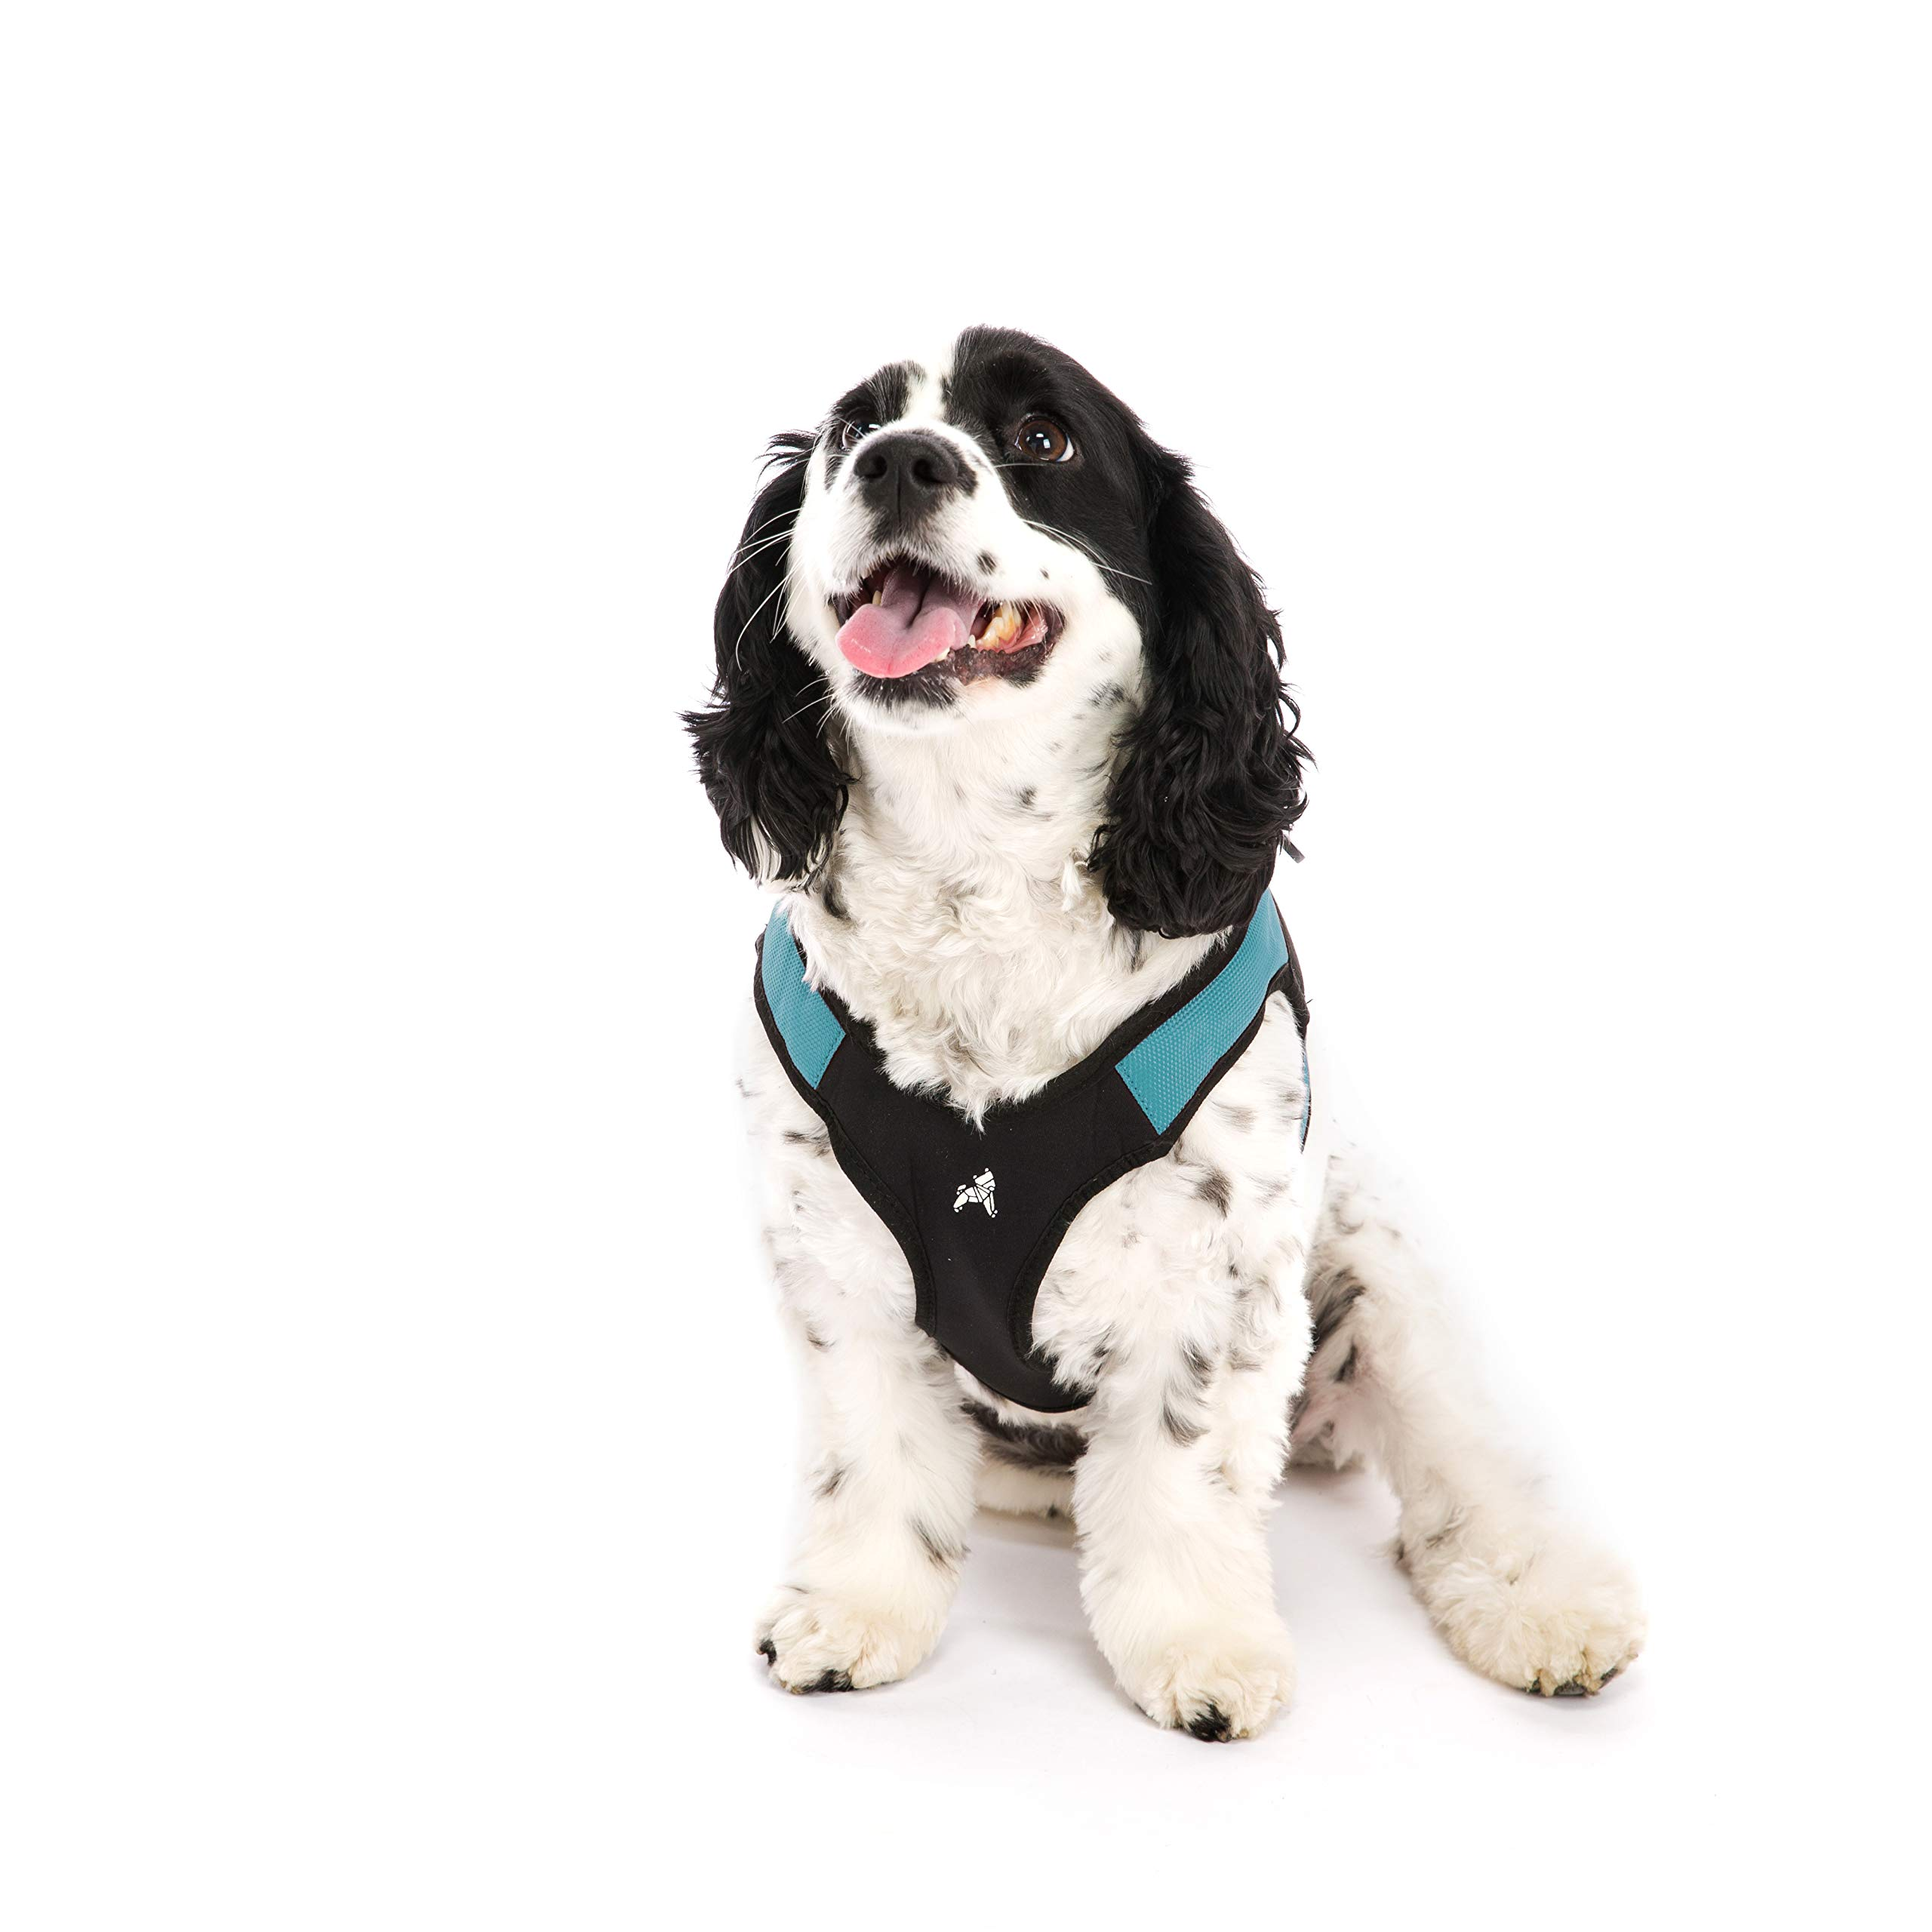 Gooby - Escape Free Easy Fit Harness, Small Dog Step-in Harness for Dogs That Like to Escape Their Harness, Turquoise, Large